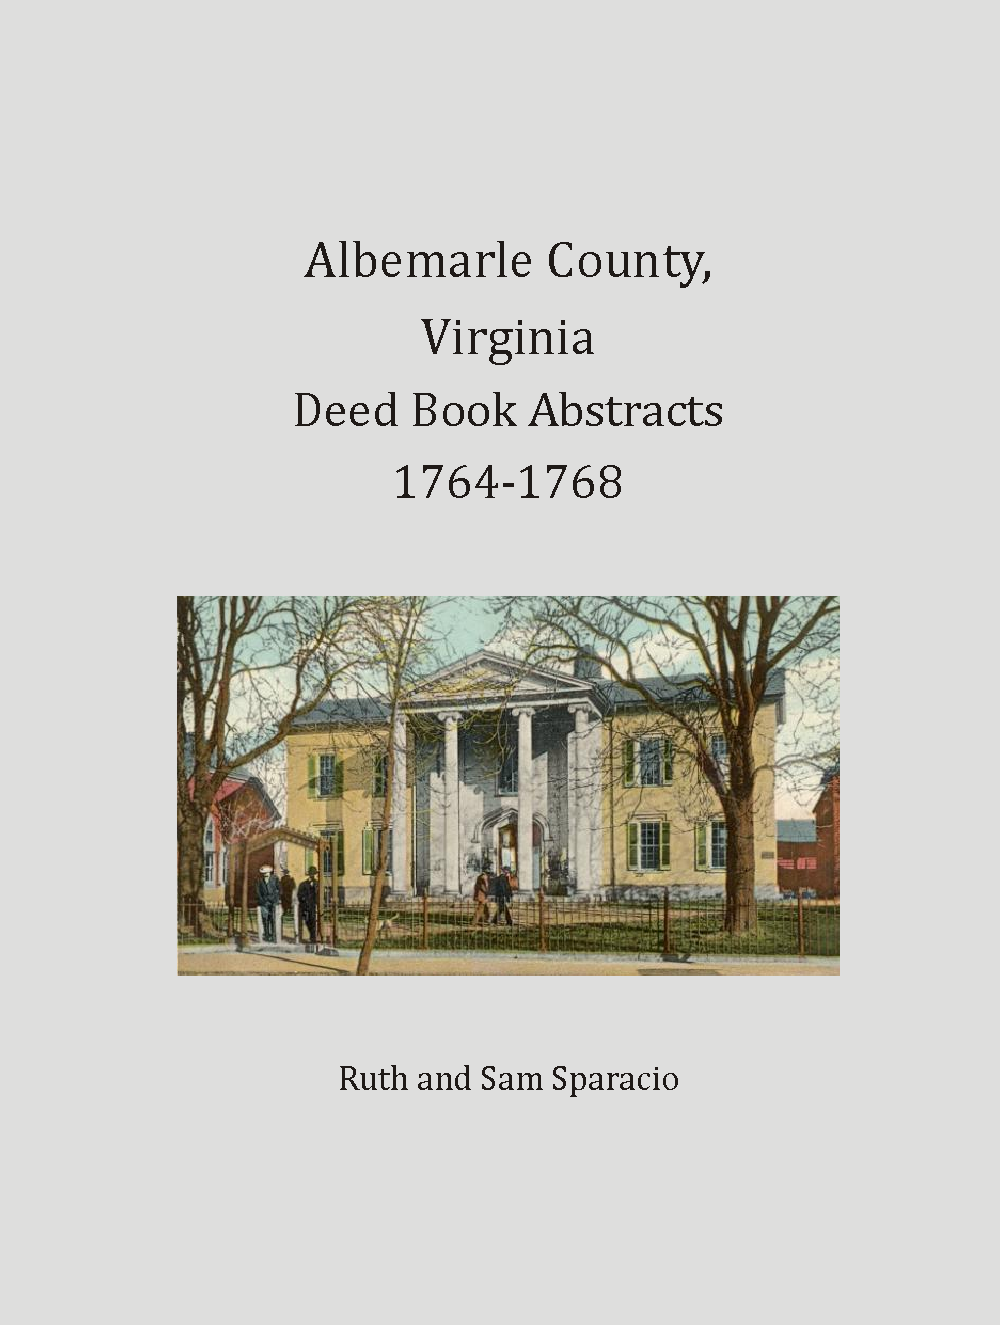 Albemarle County, Virginia Deed Book Abstracts, 1764-1768